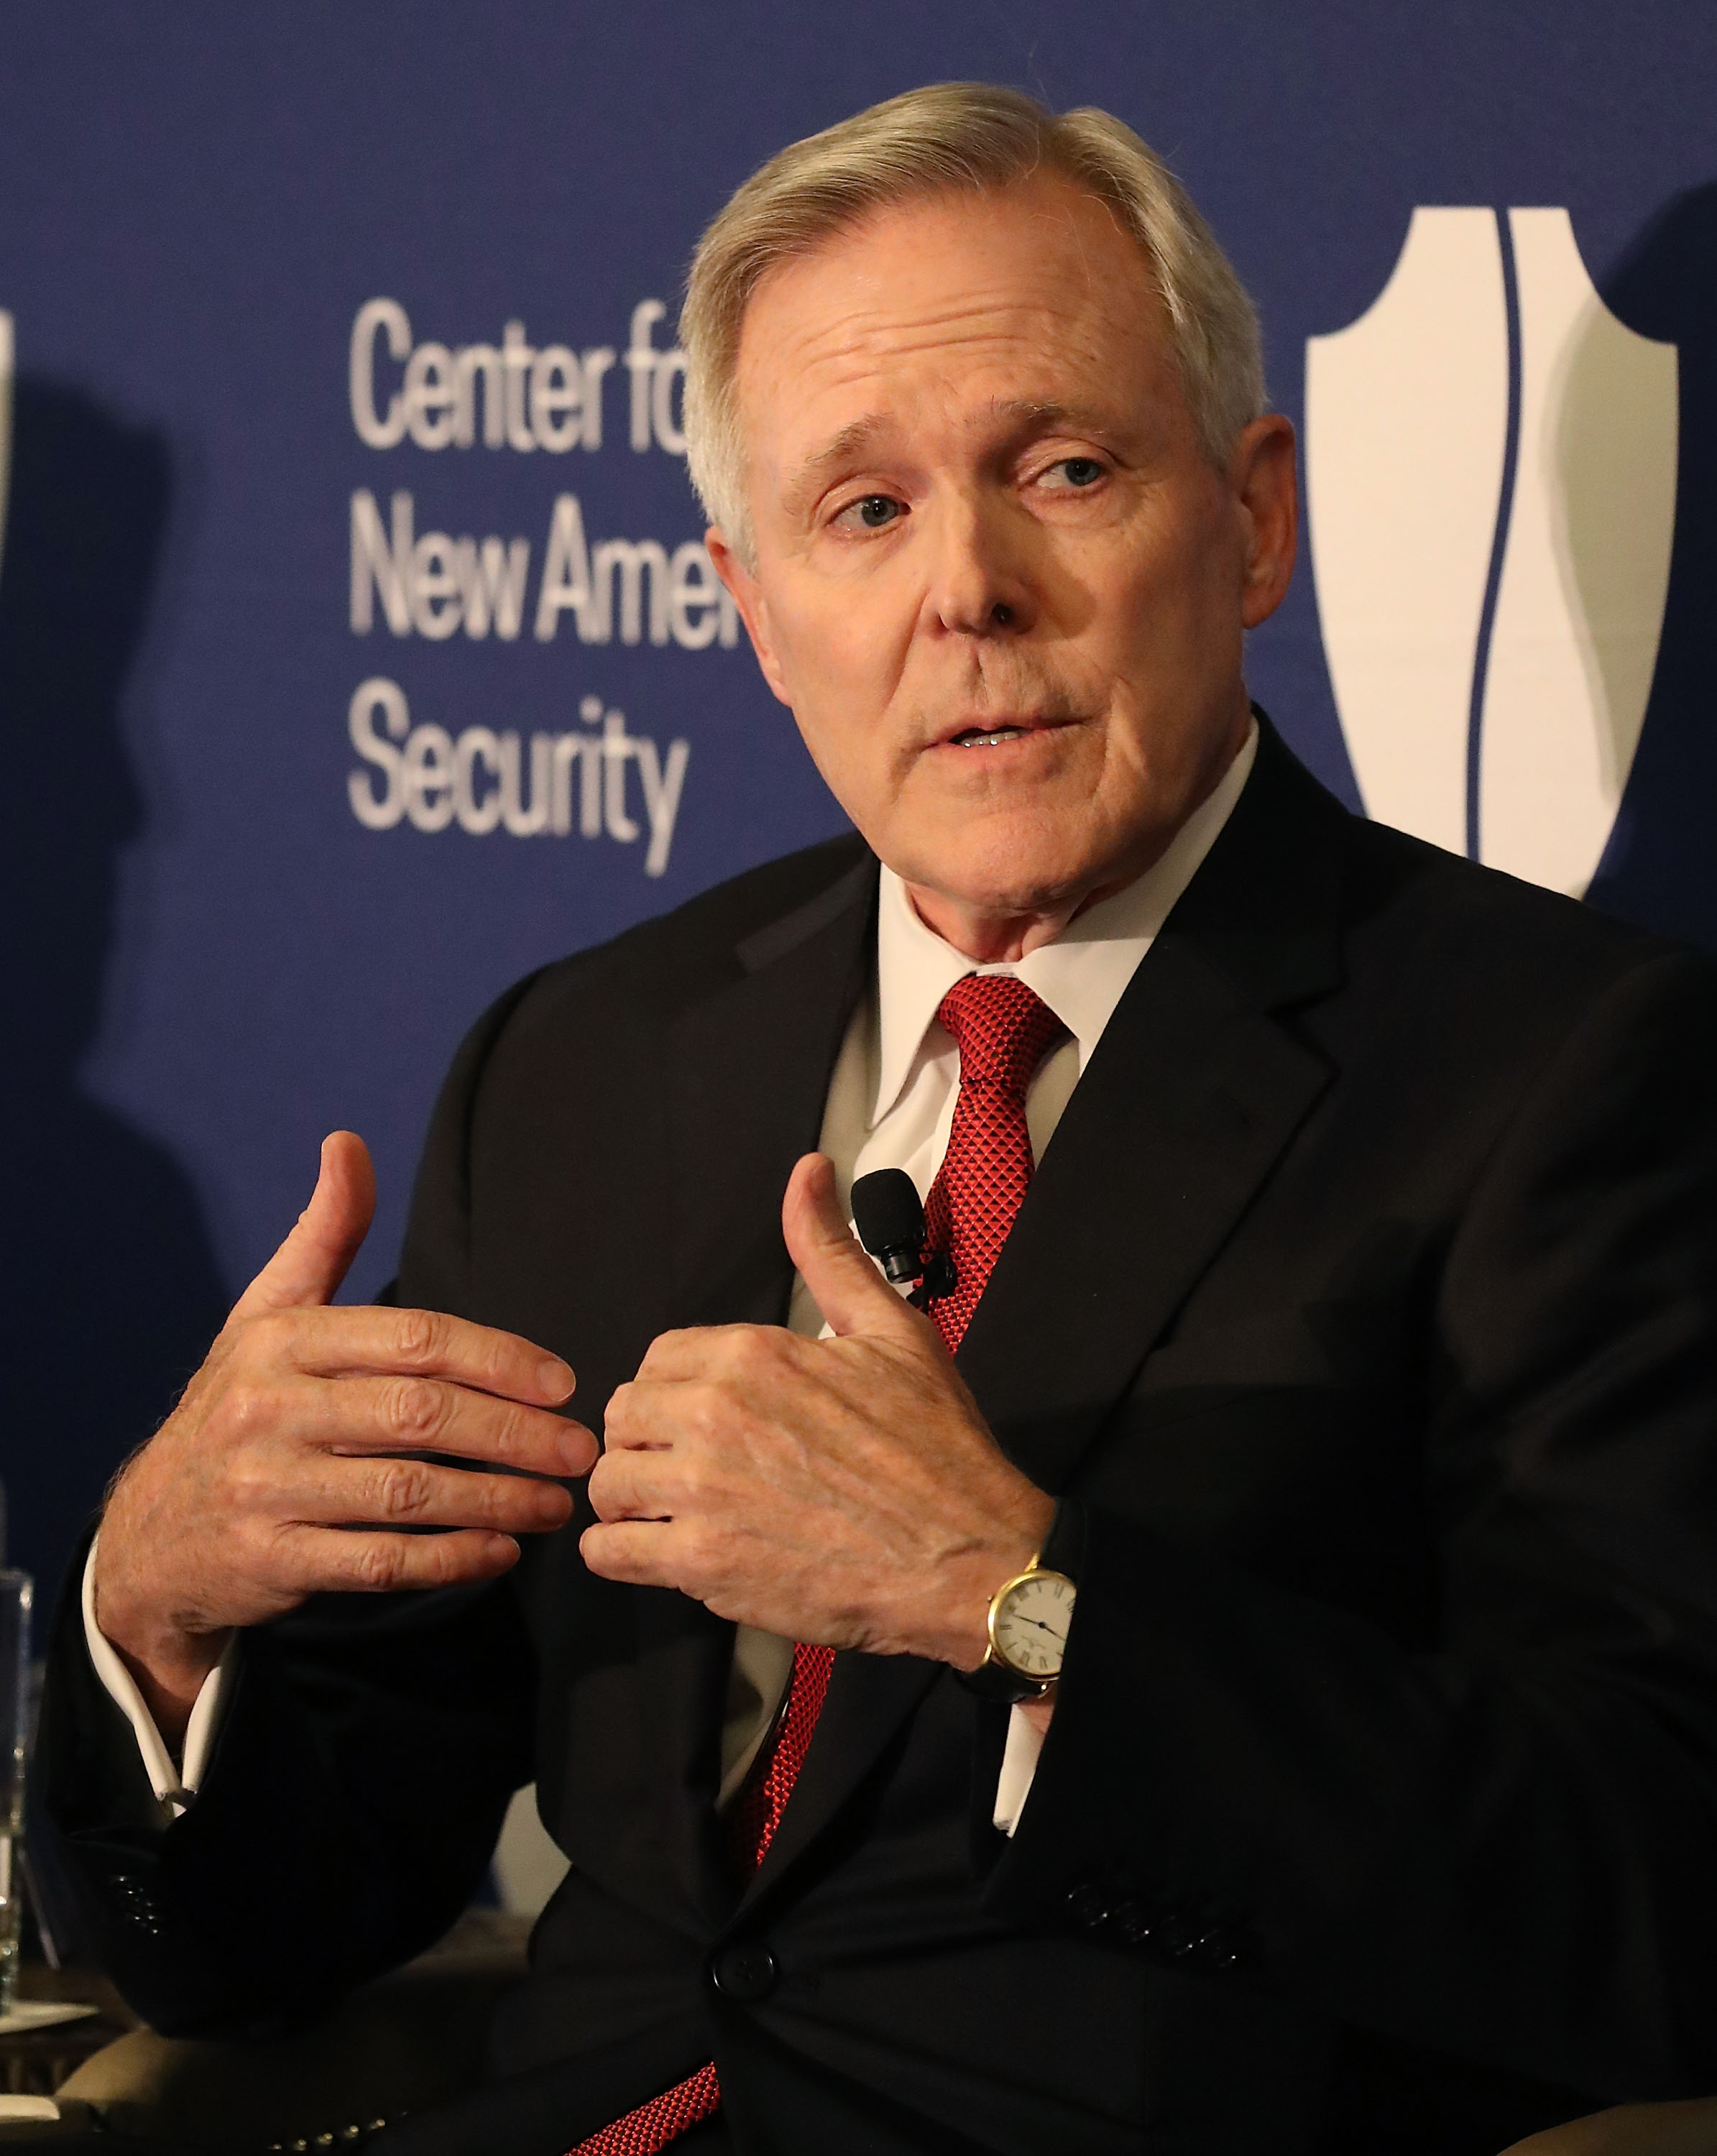 Army, Navy And Air Force Secretaries Discuss National Security In Washington